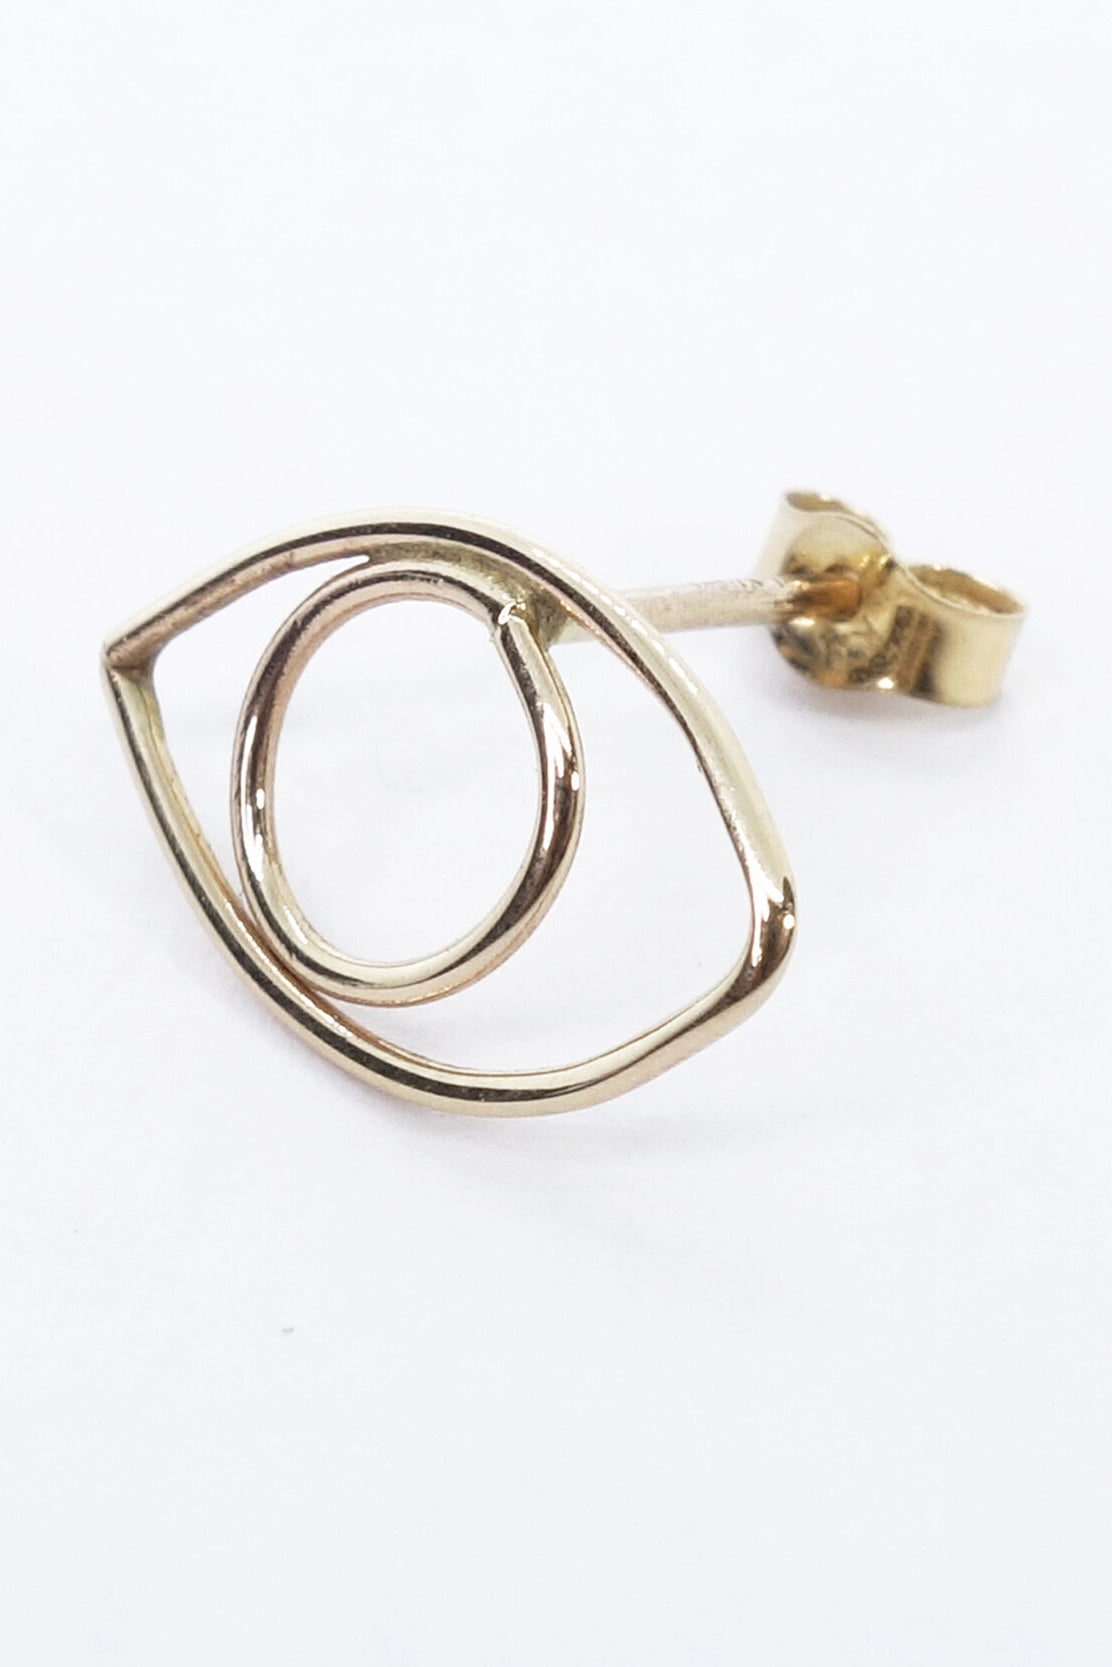 Protective Eye Stud in Recycled 14k Gold